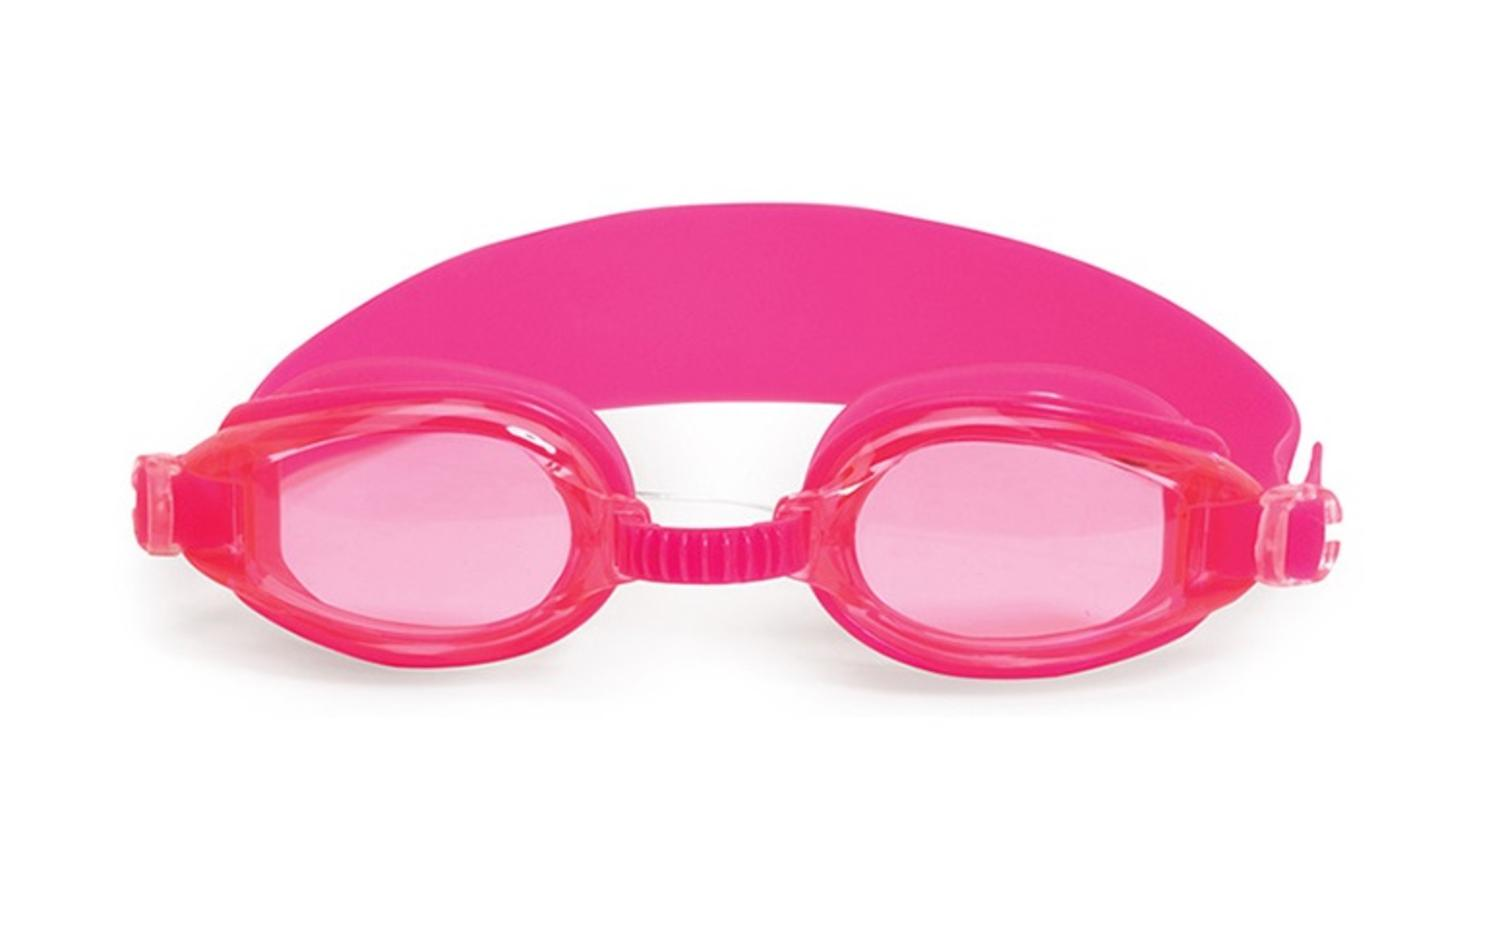 """6.25"""" Advantage Pink Goggles Swimming Pool Accessory for Juniors by Swim Central"""